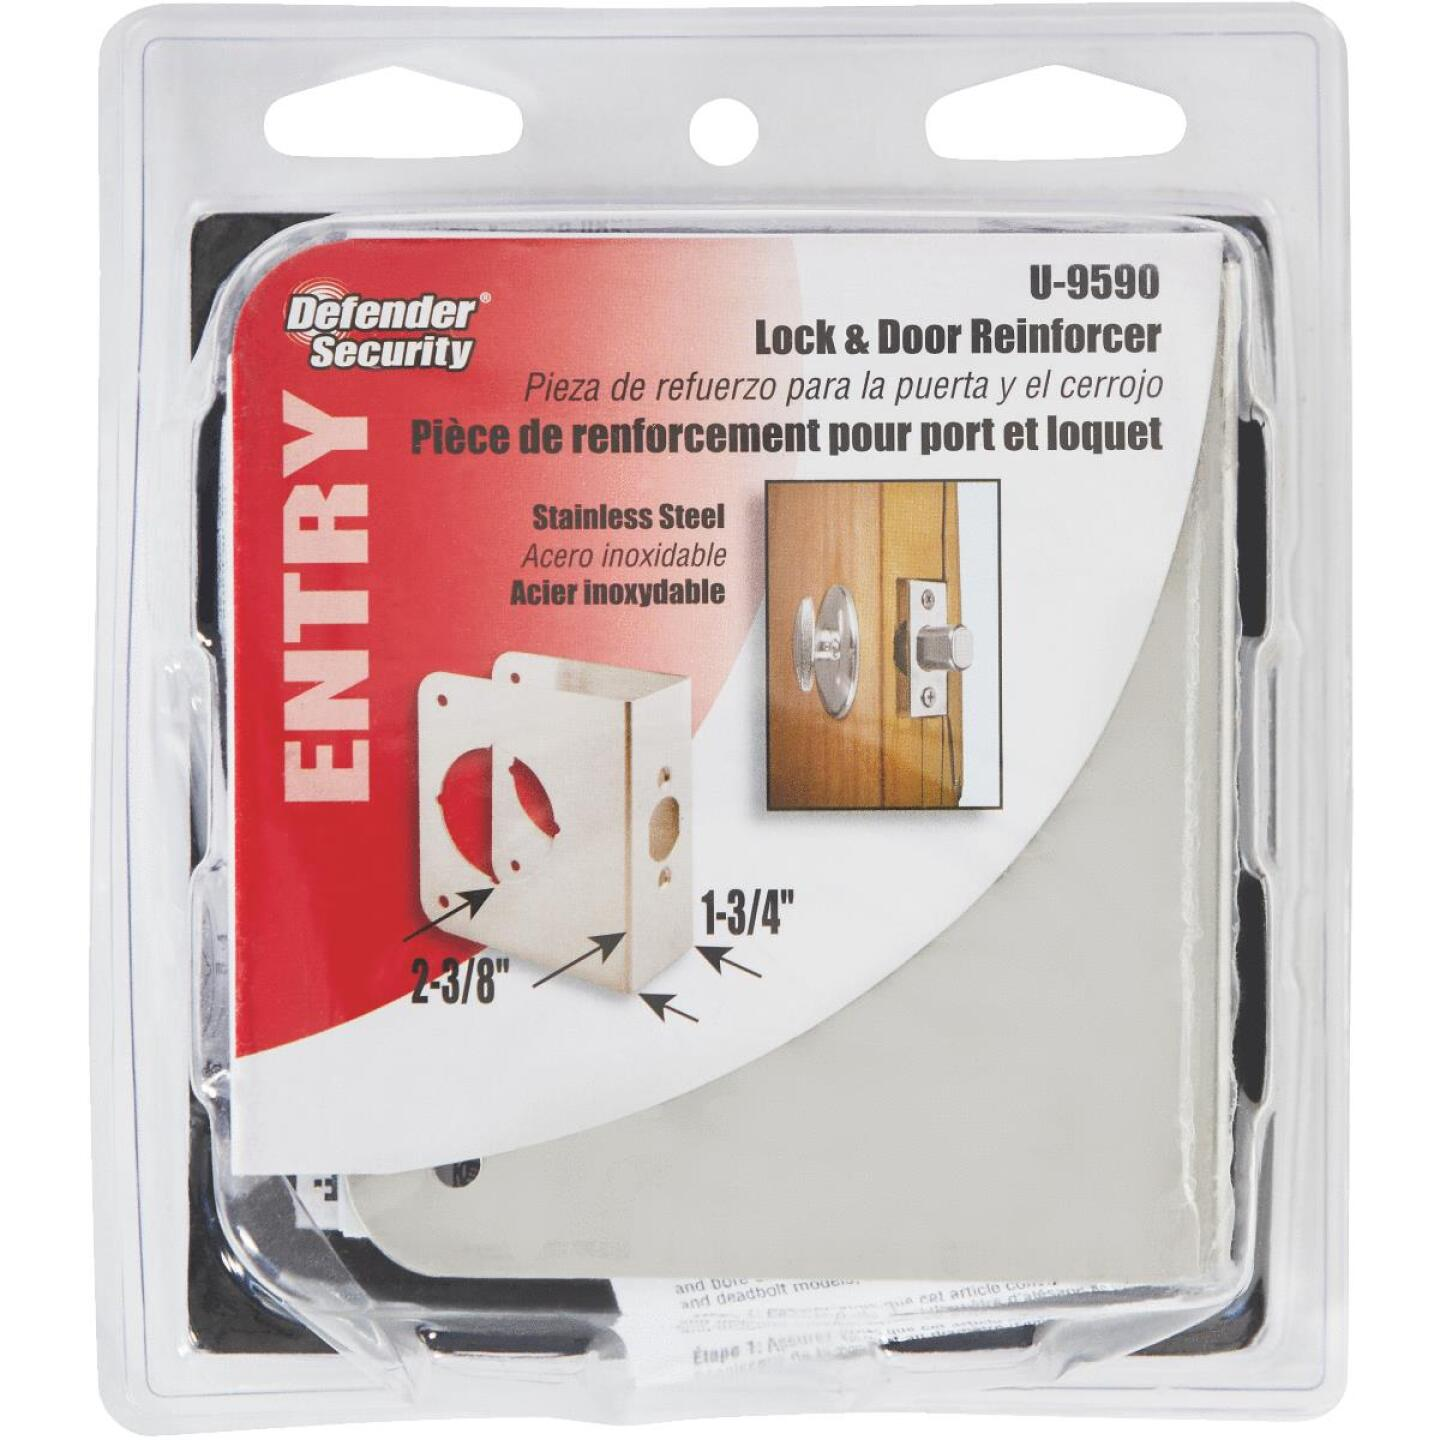 Defender Security Stainless Steel 1-3/4 In. Thick Lock & Door Reinforcer Image 2